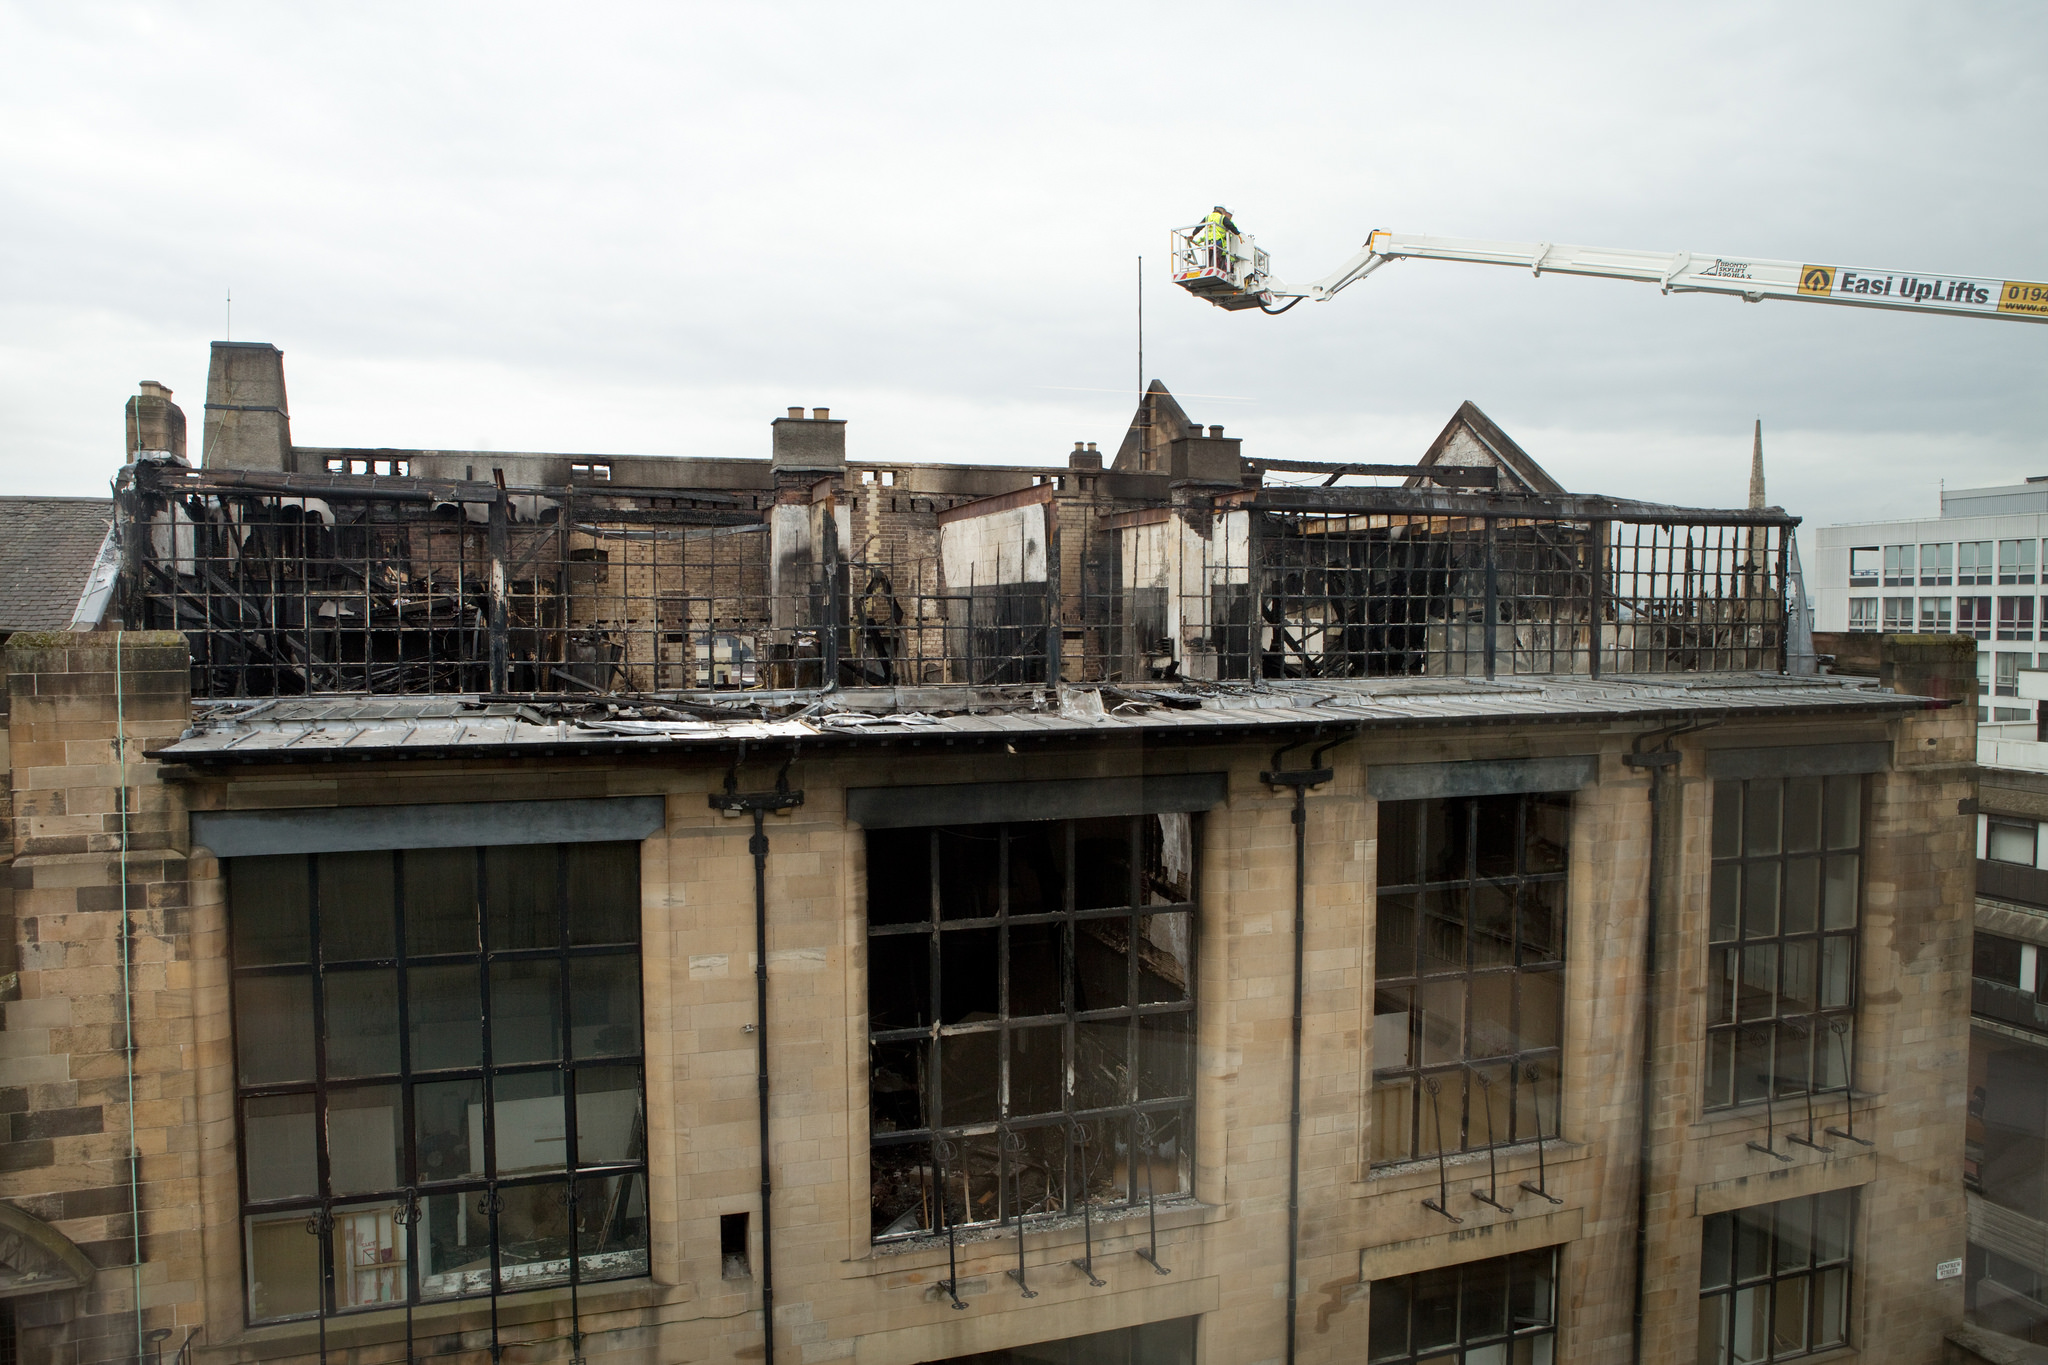 The Mackintosh Building at The Glasgow School of Art, which was damaged by fire in May 2014. Photo by Alan McAteer.